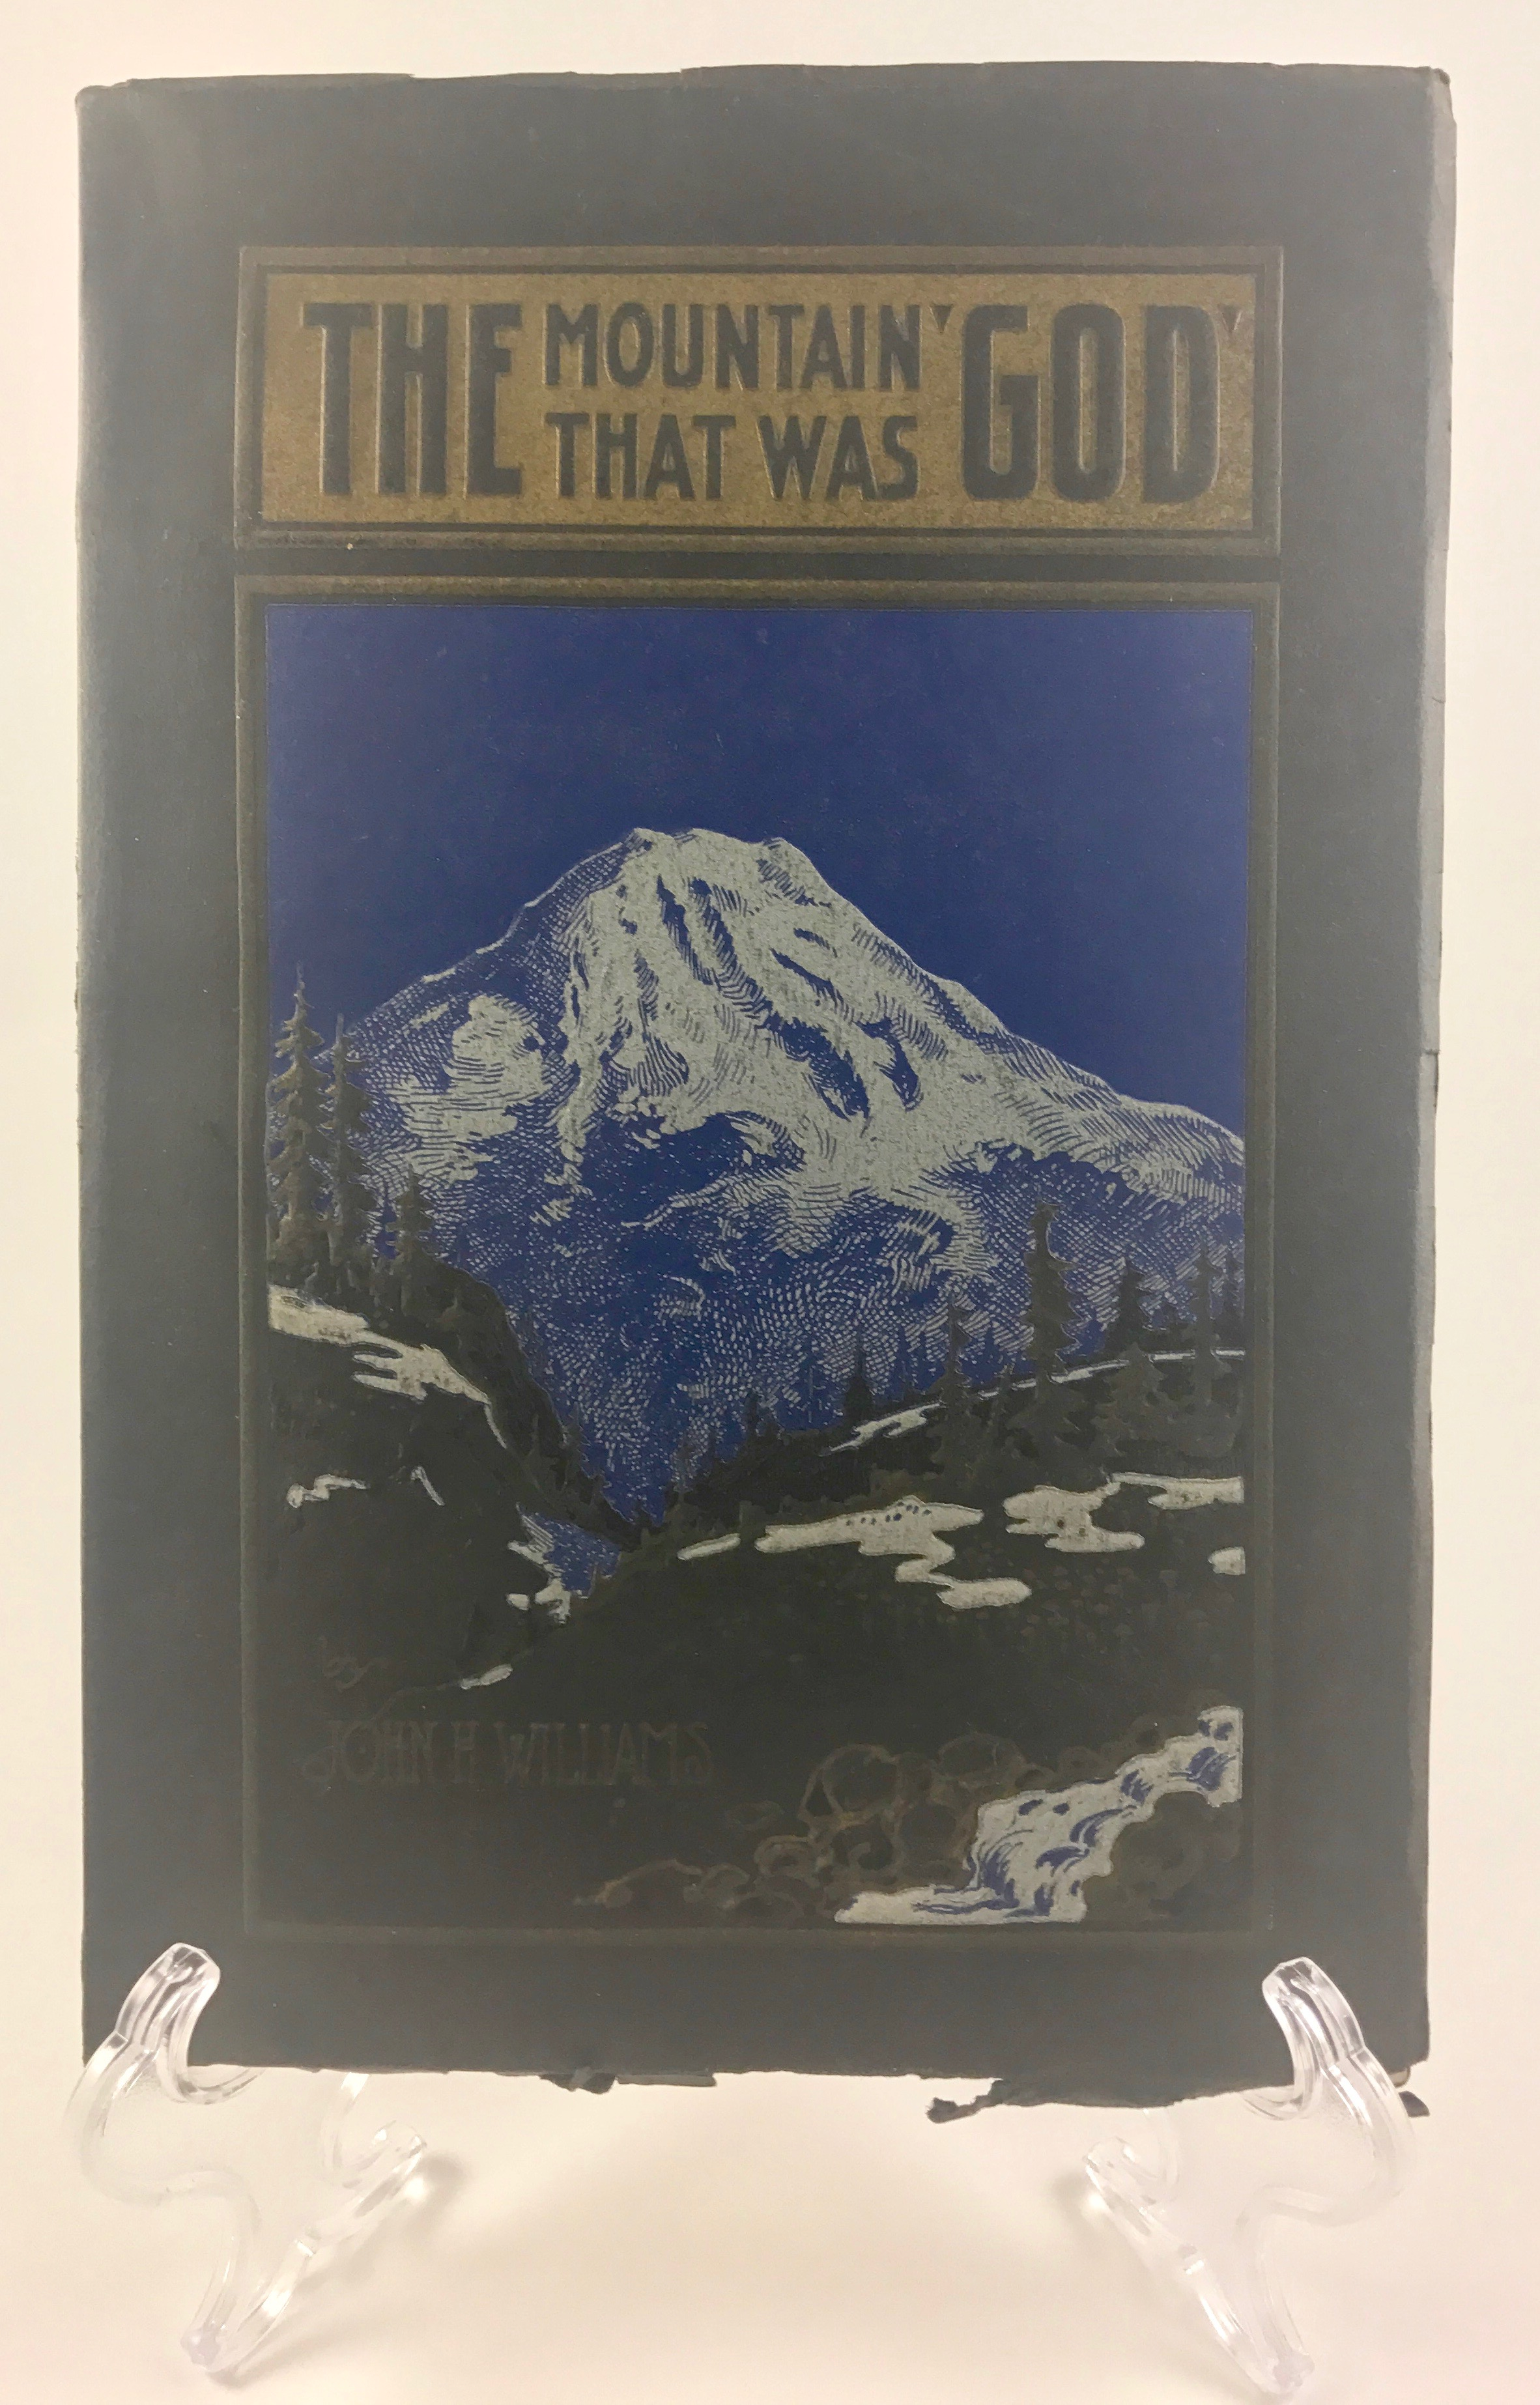 Tacoma Back Pages >> The Mountain That Was God by John H. Williams 1910 Paperback Book (RARE)   Caribou Antiques